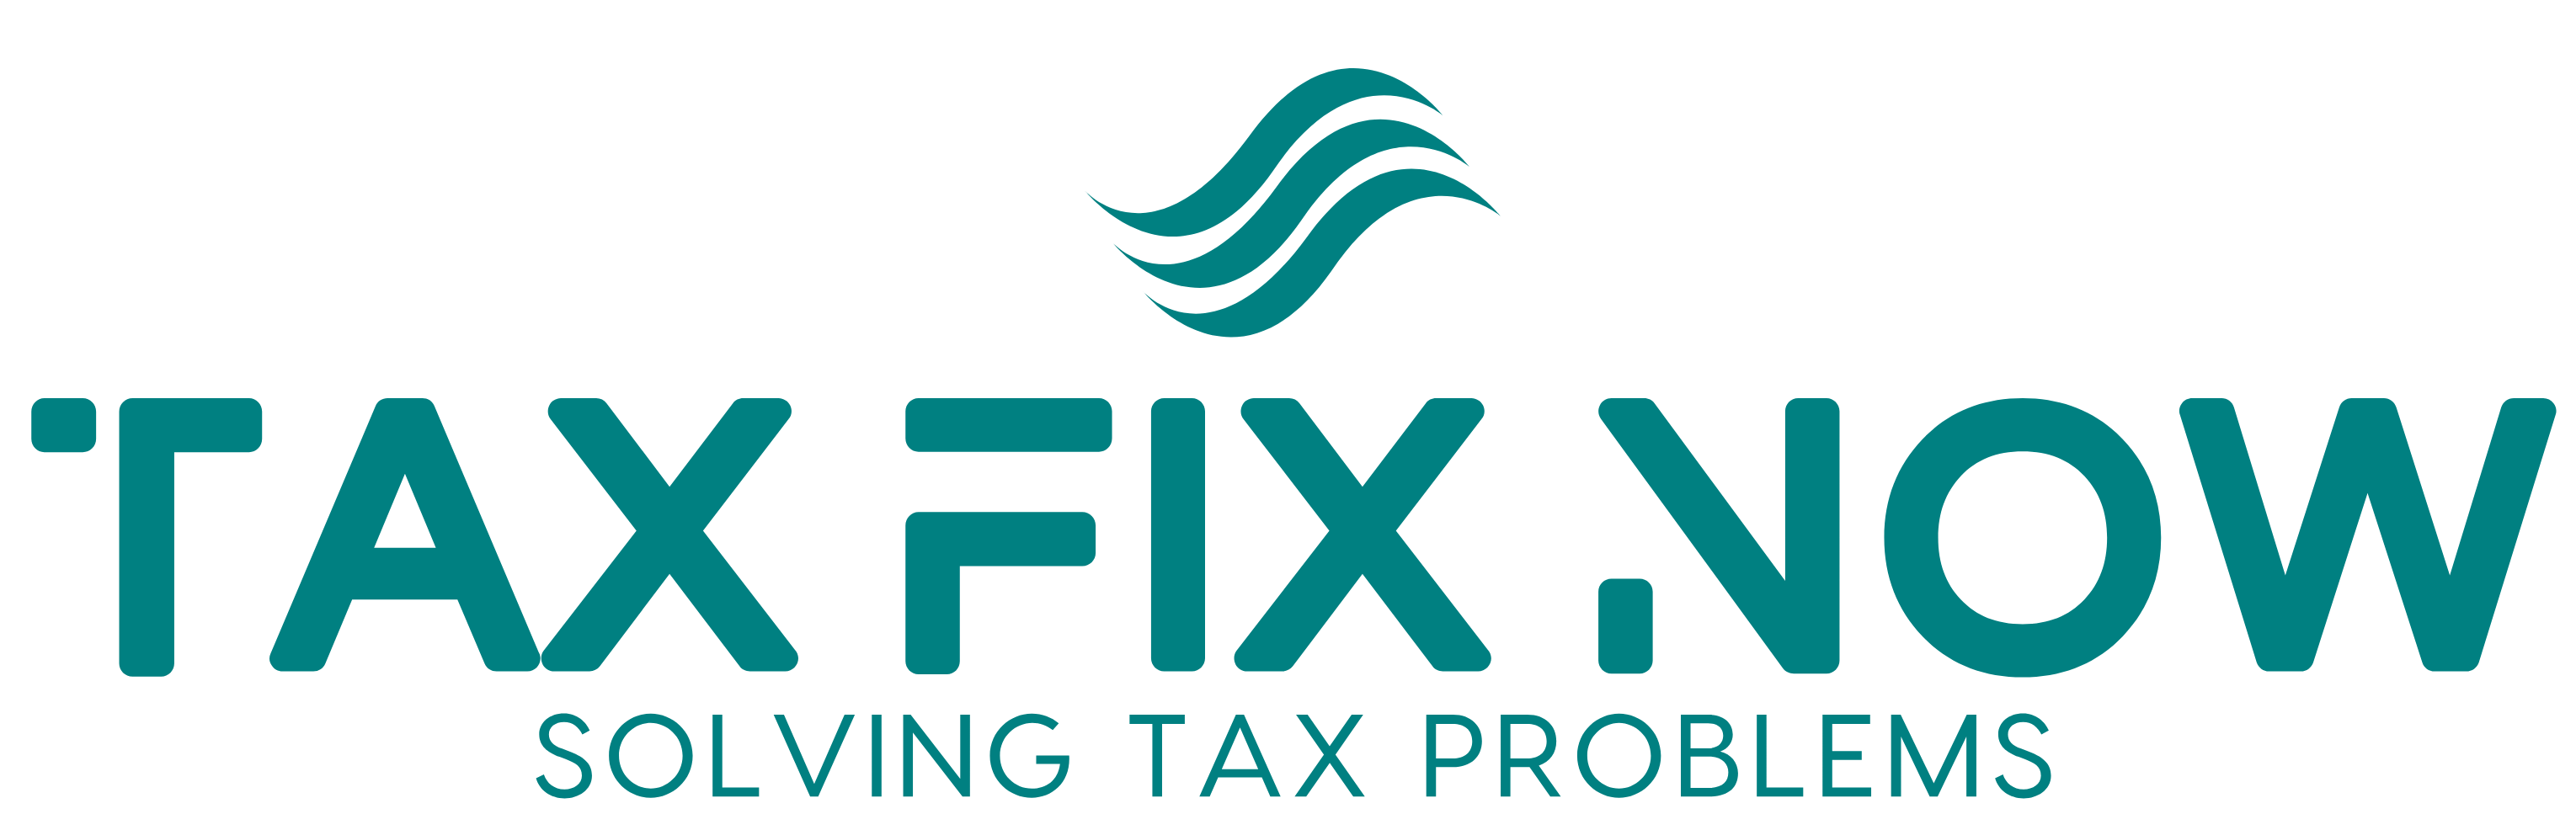 Highland Village, TX Bookkeeping Firm | Site Map Page | Tax Fix Now